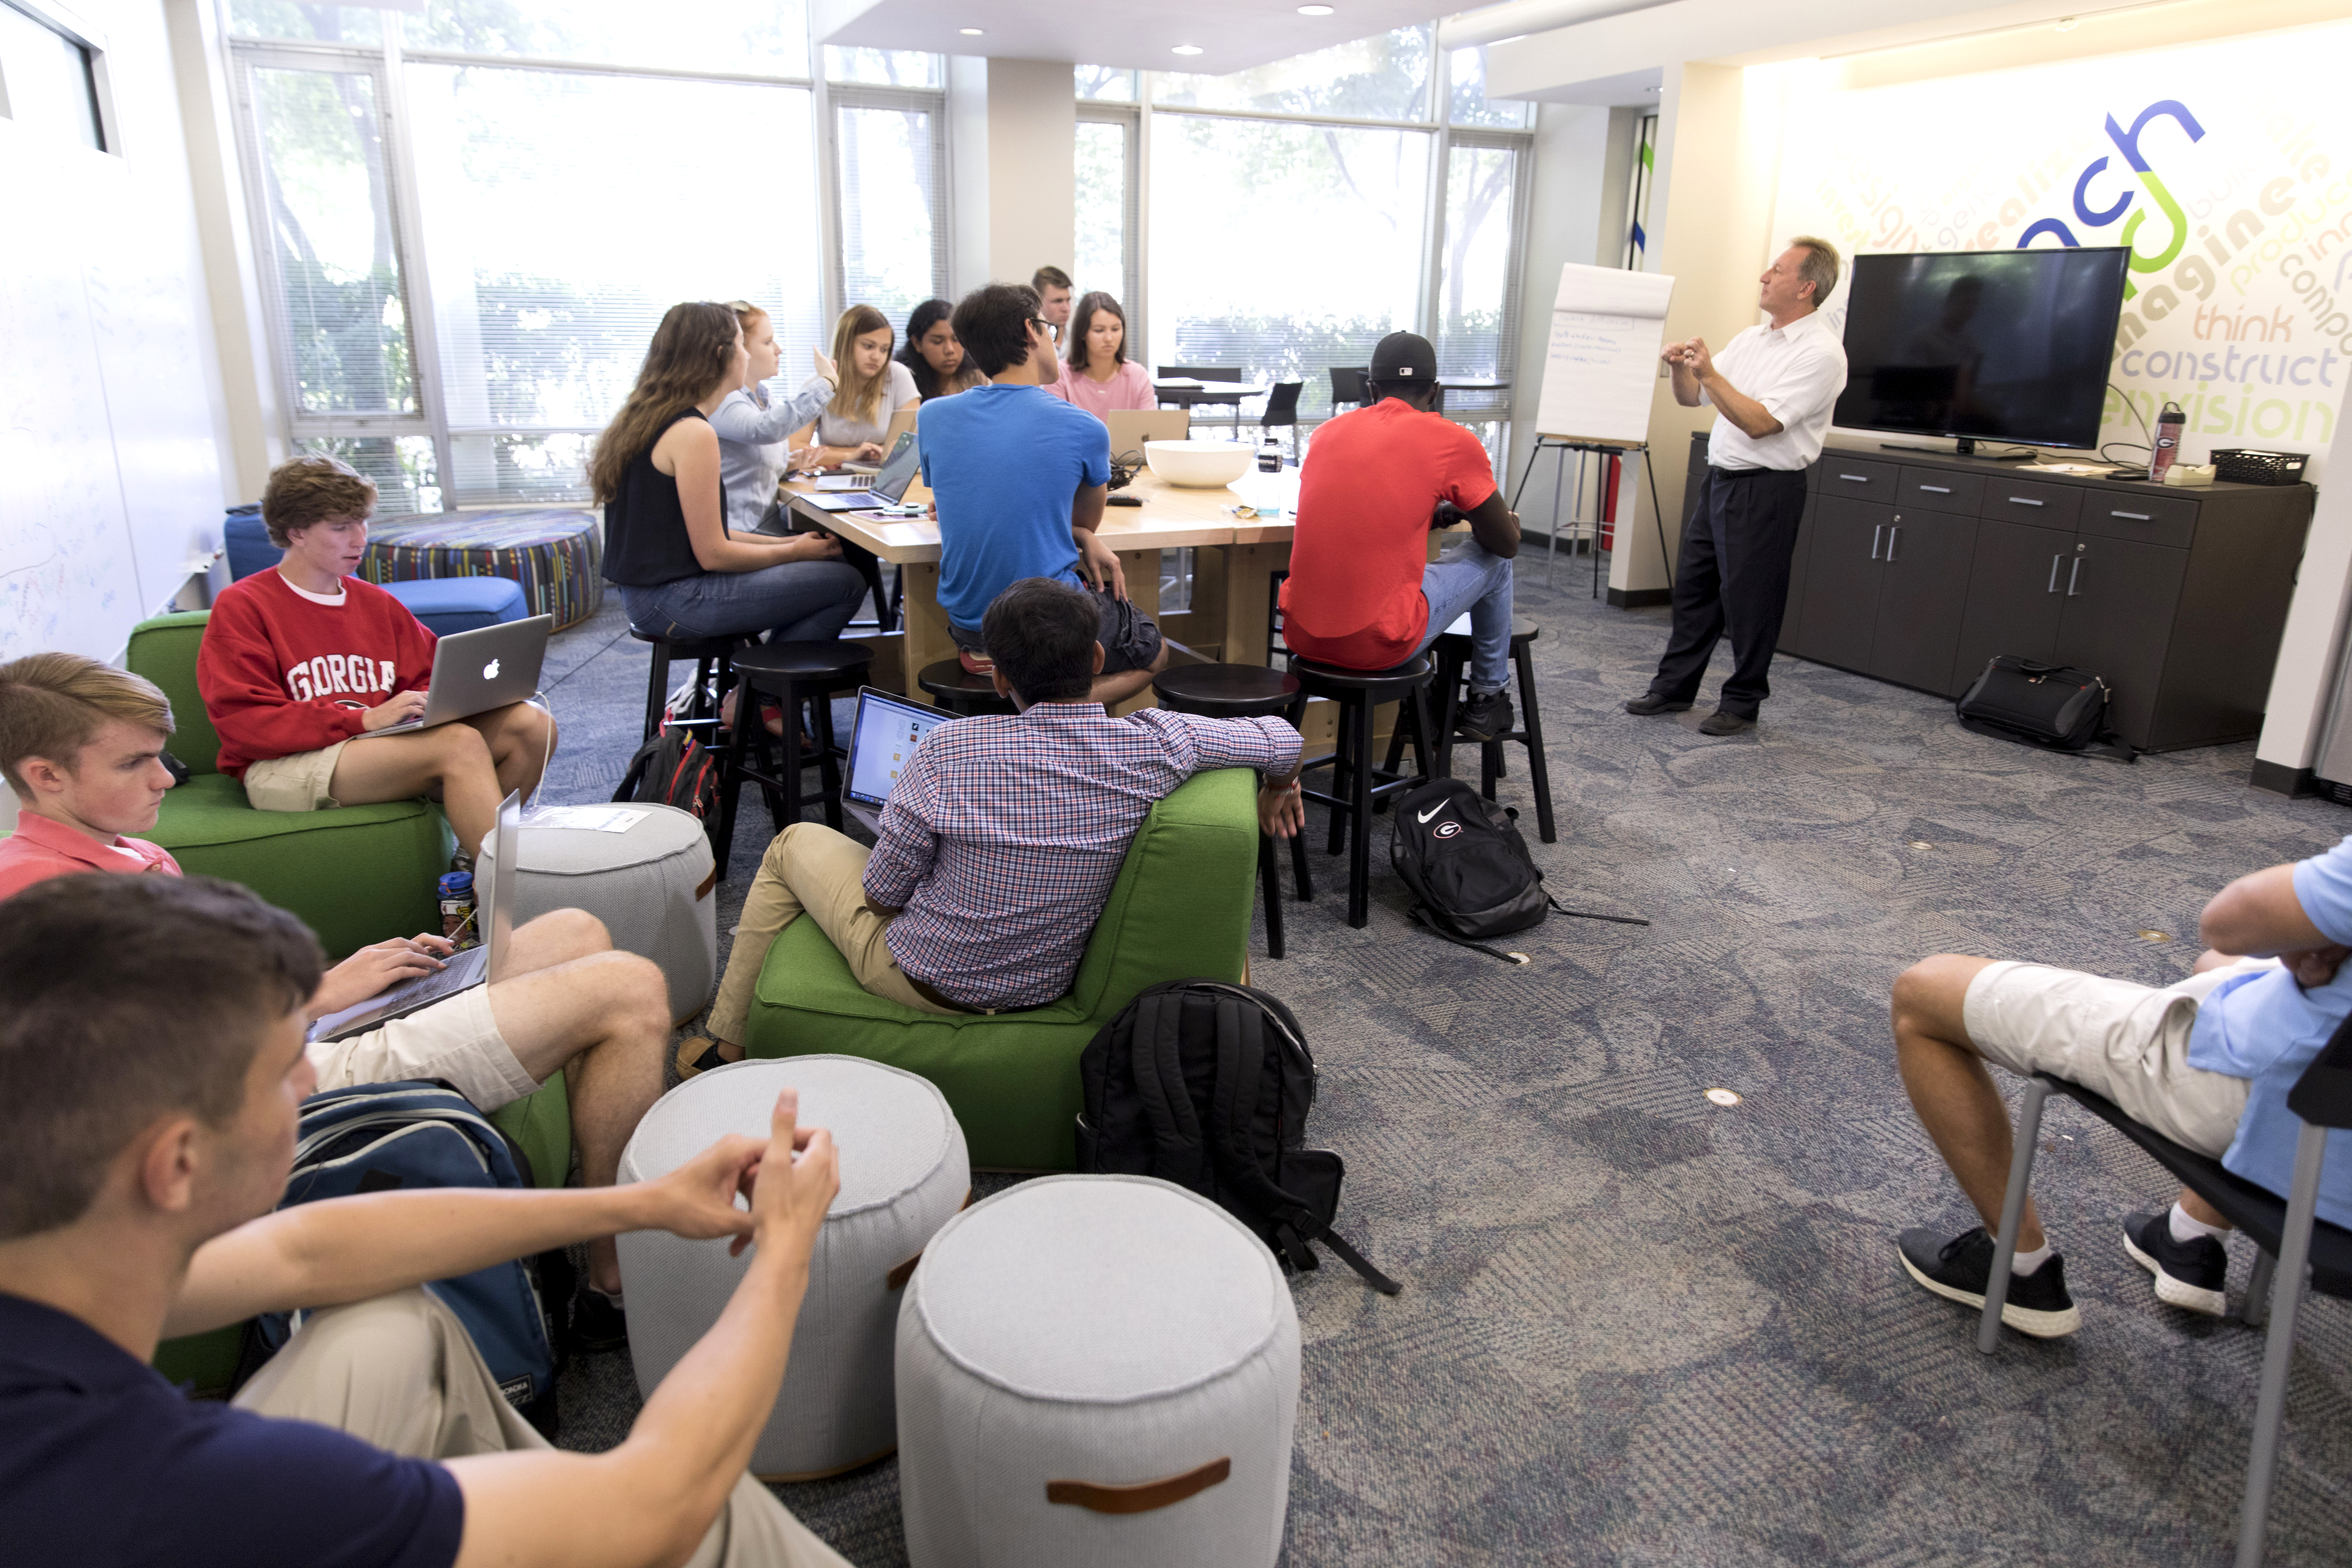 Donald Chambers, lecturer and associate director of the entrepreneurship program far right, talks with students during class